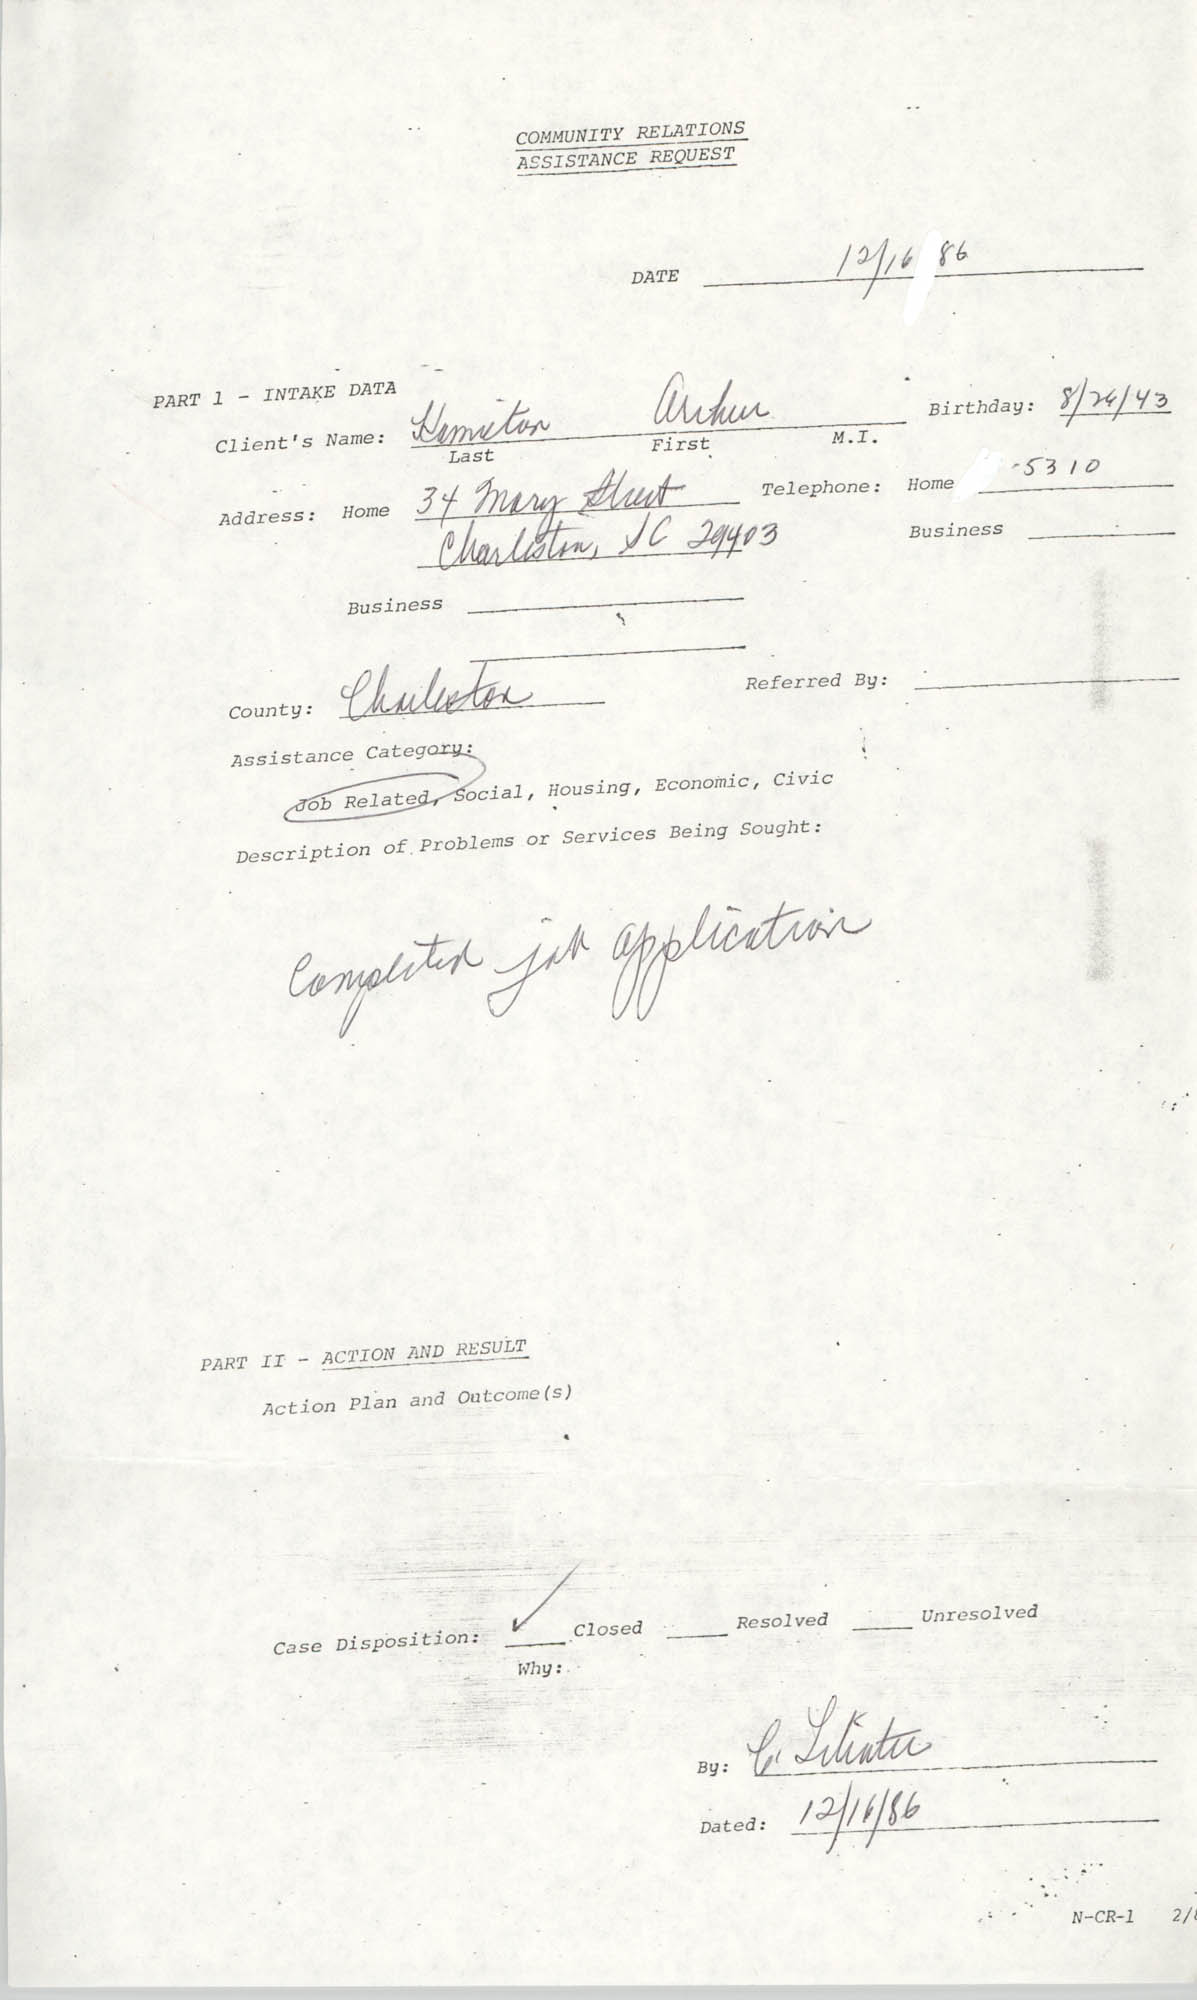 Community Relations Assistance Request, December 16, 1986